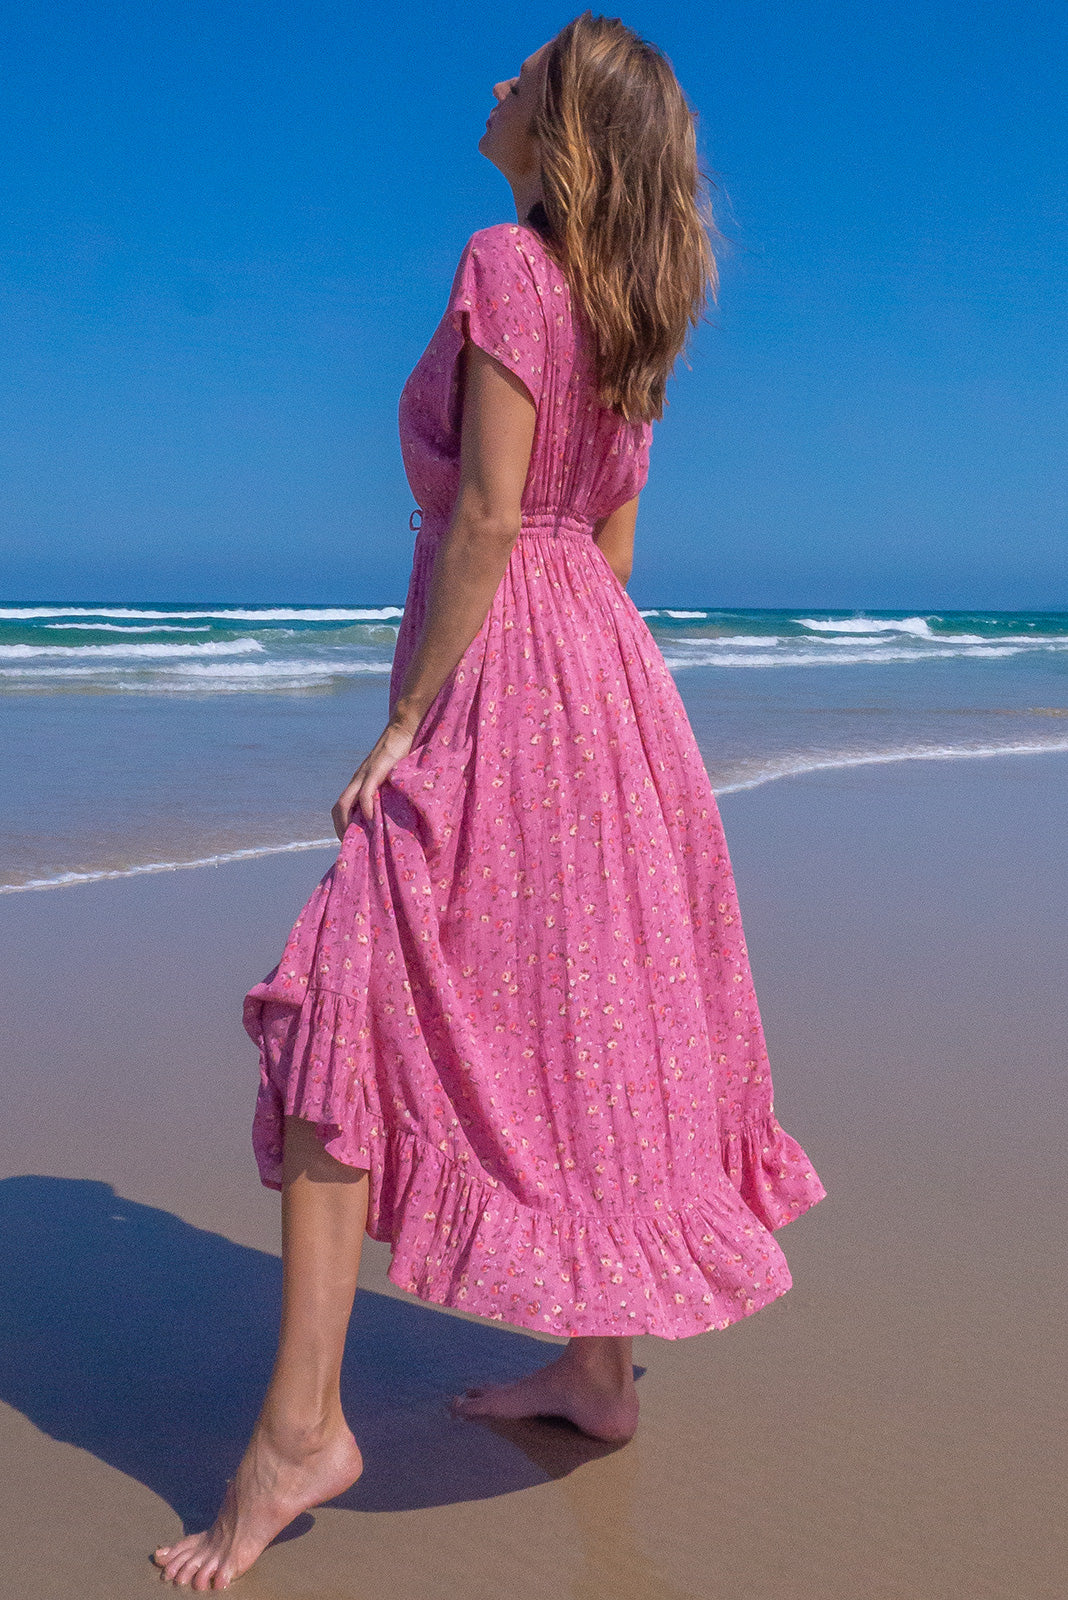 The Willow Pink party Maxi Dress features V-neck with lace feature, cap sleeves, elasticated waist with adjustable drawstring, frill hem and crinkle textured 100% rayon in rich pink base with ditzy floral print.